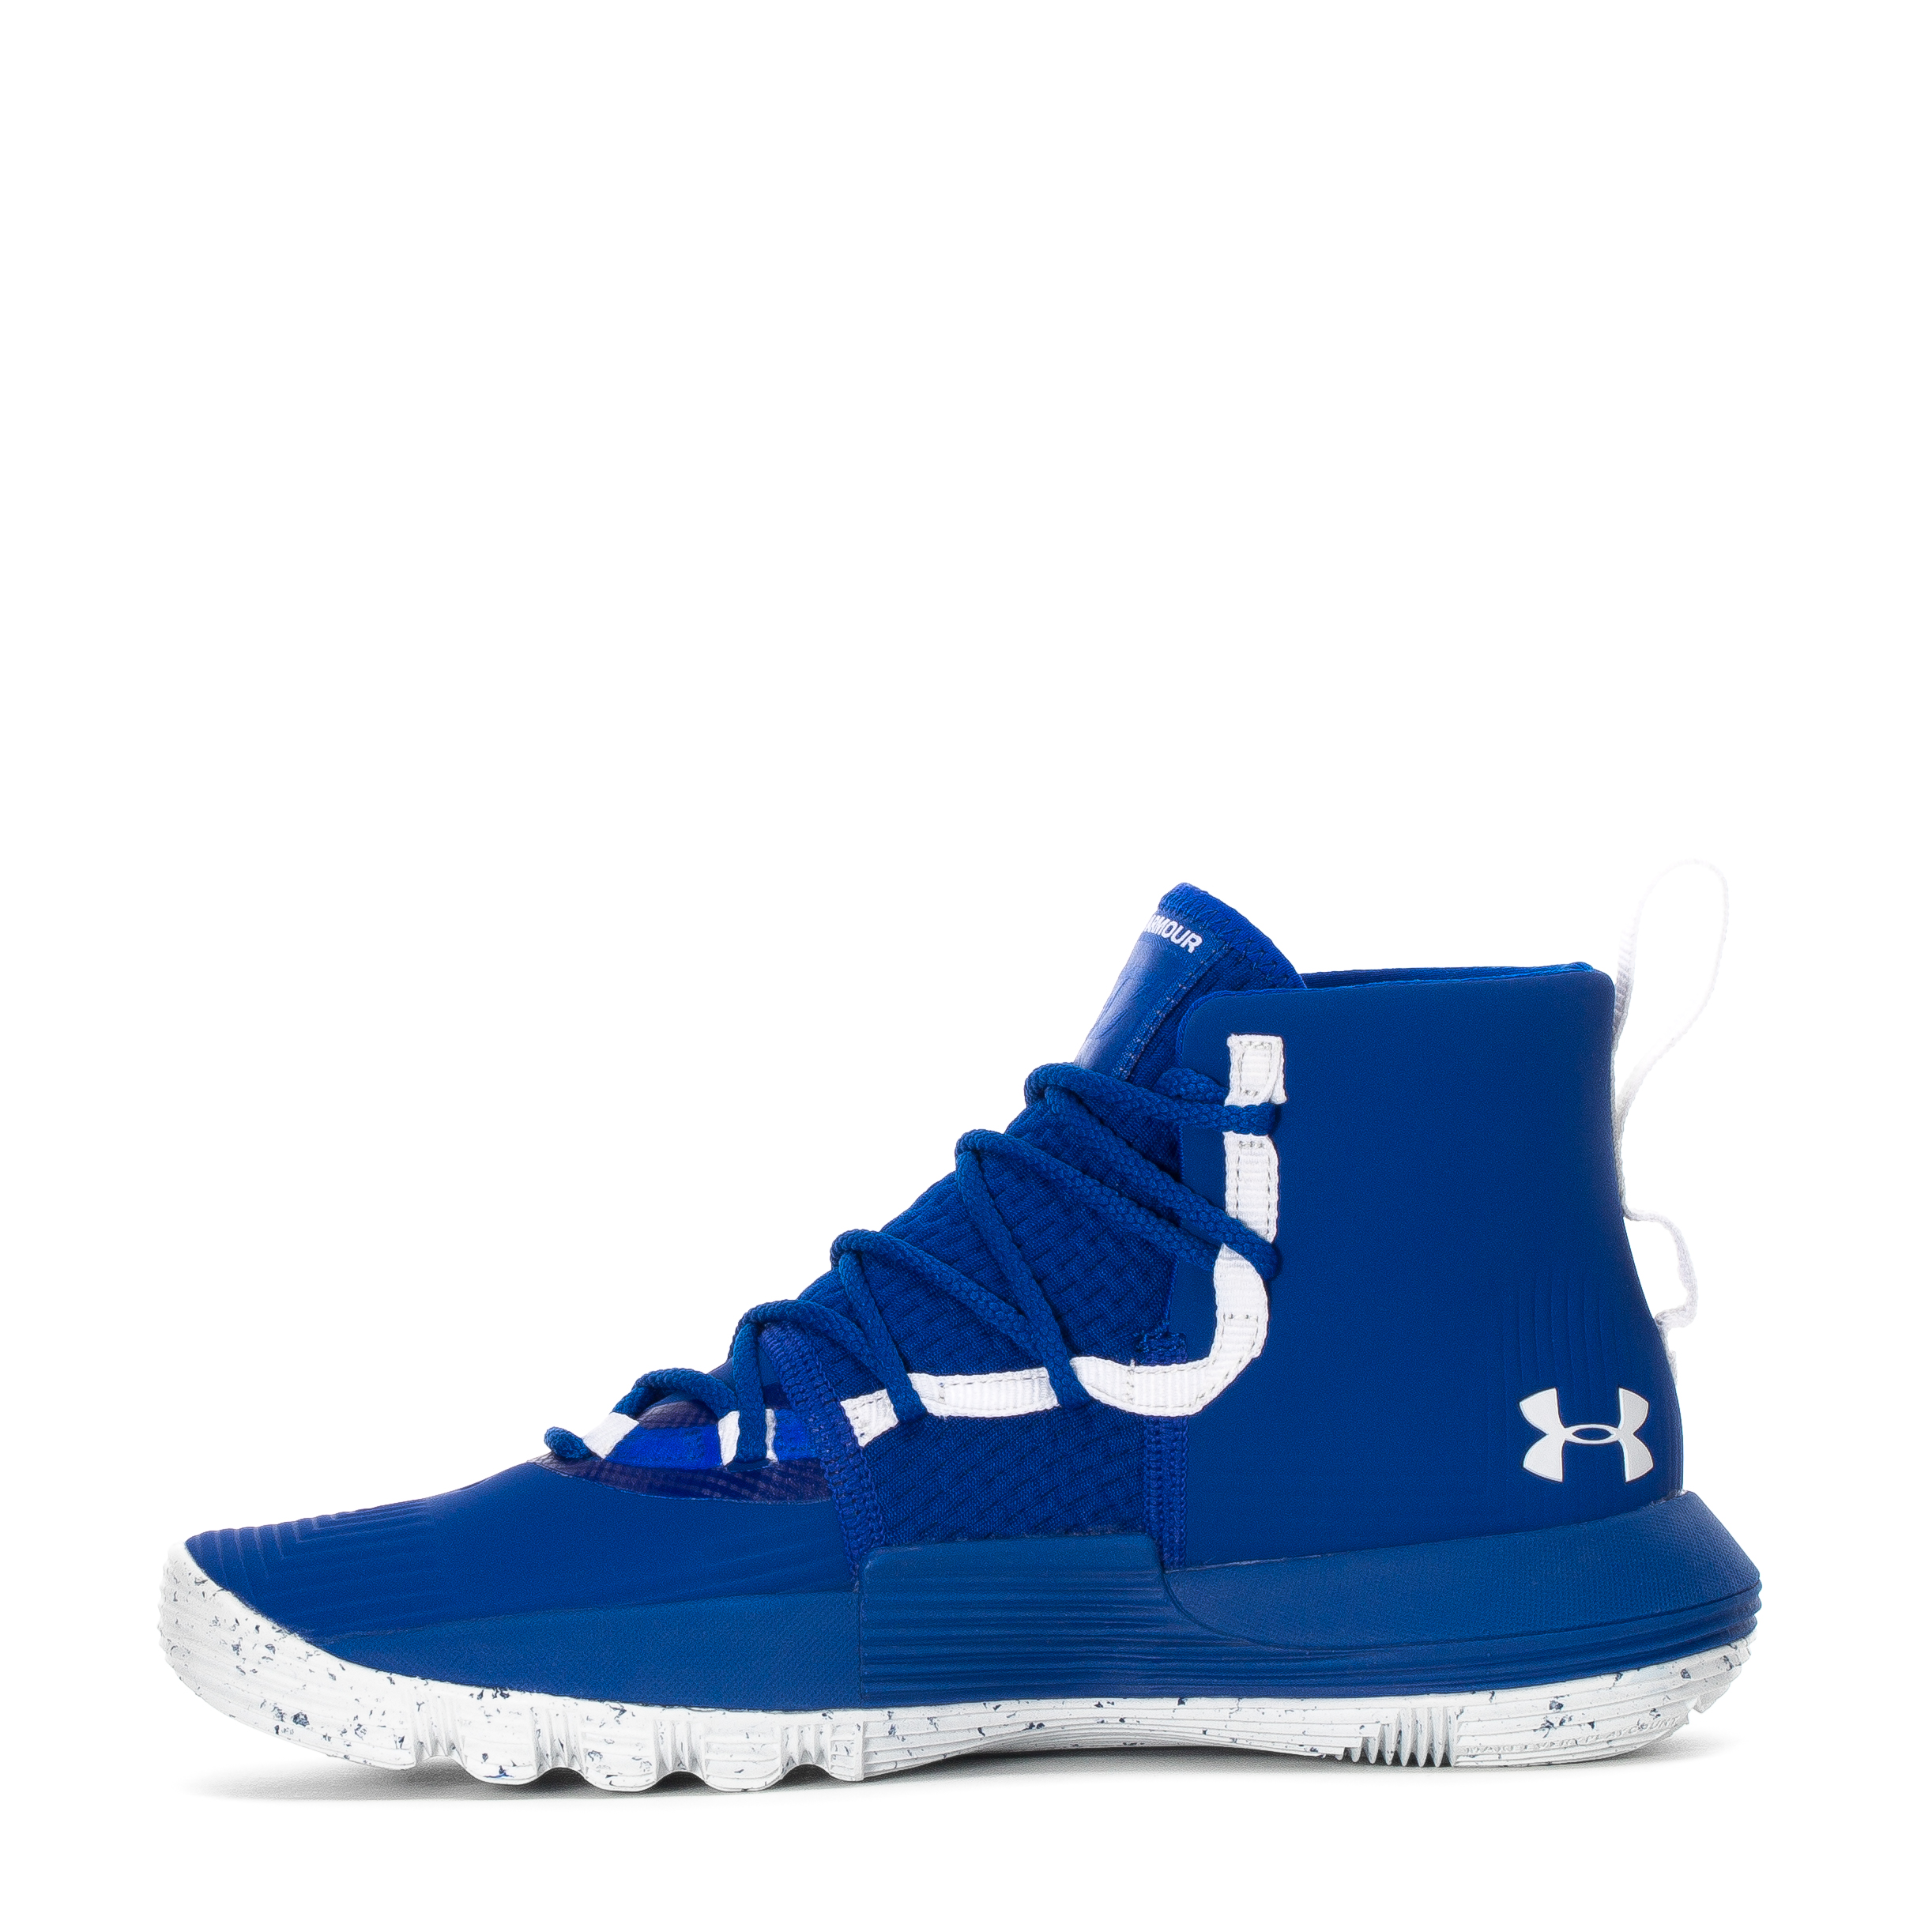 meet 2474c 5affd Under Armour UA BGS SC 3Zero II Curry Sneakers 3020424-400 ...